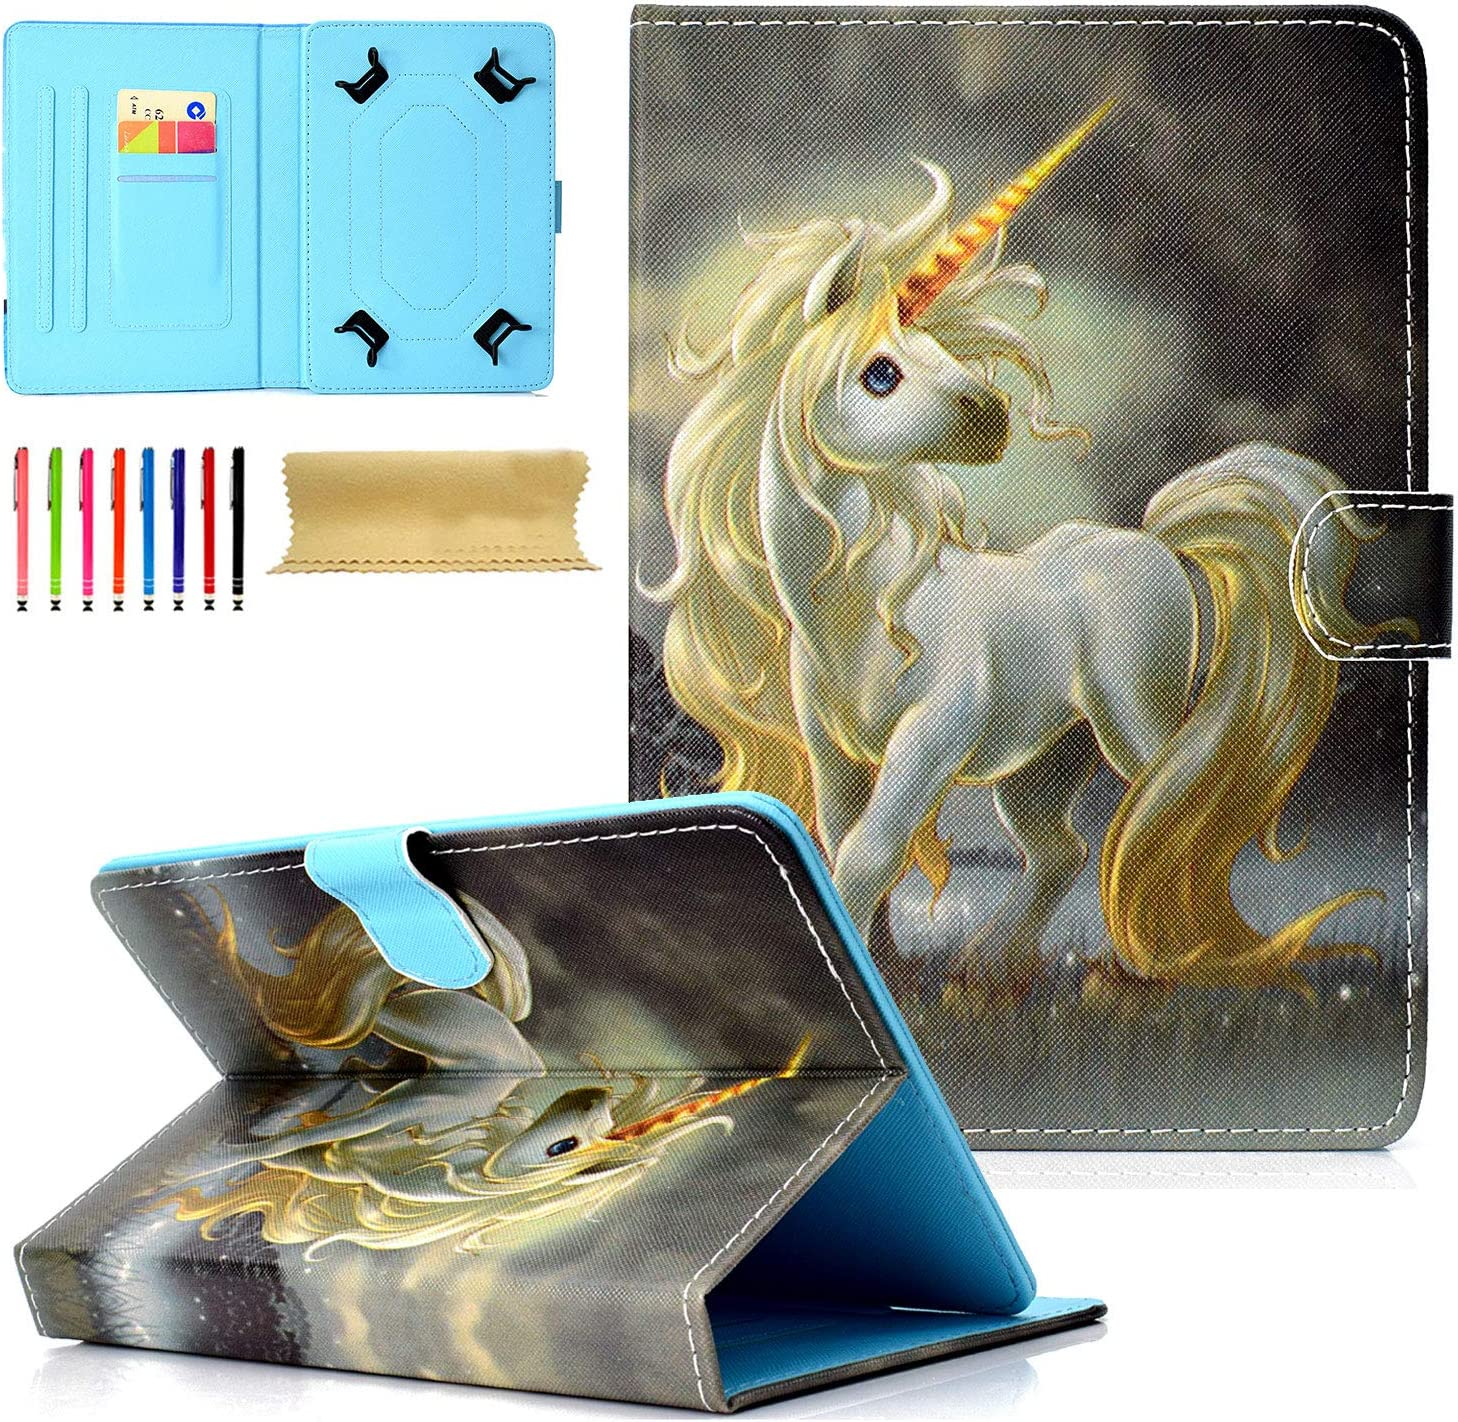 Universal Folio Case for 7 inch Tablet Multi-A Cookk PU High order Leather Translated